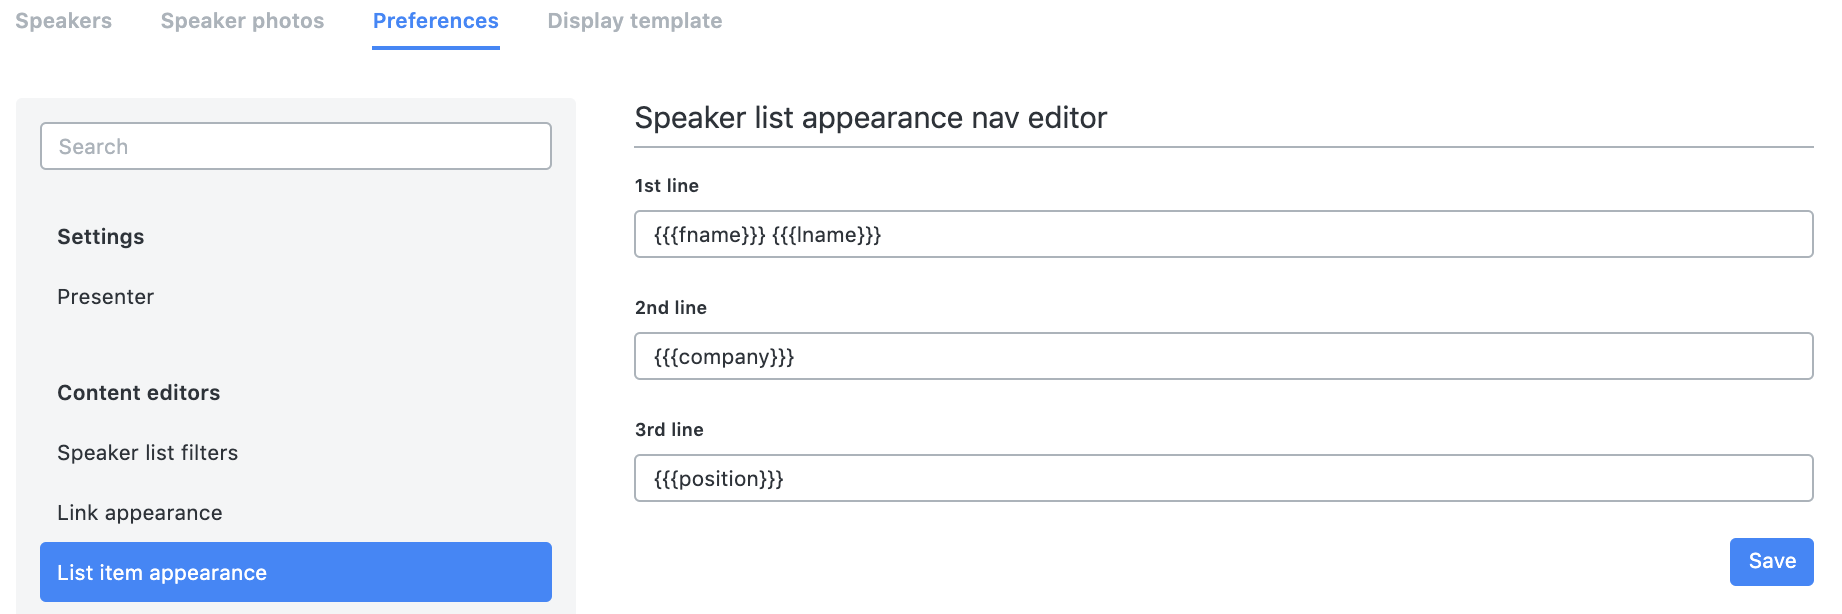 Speakers_list_item.png